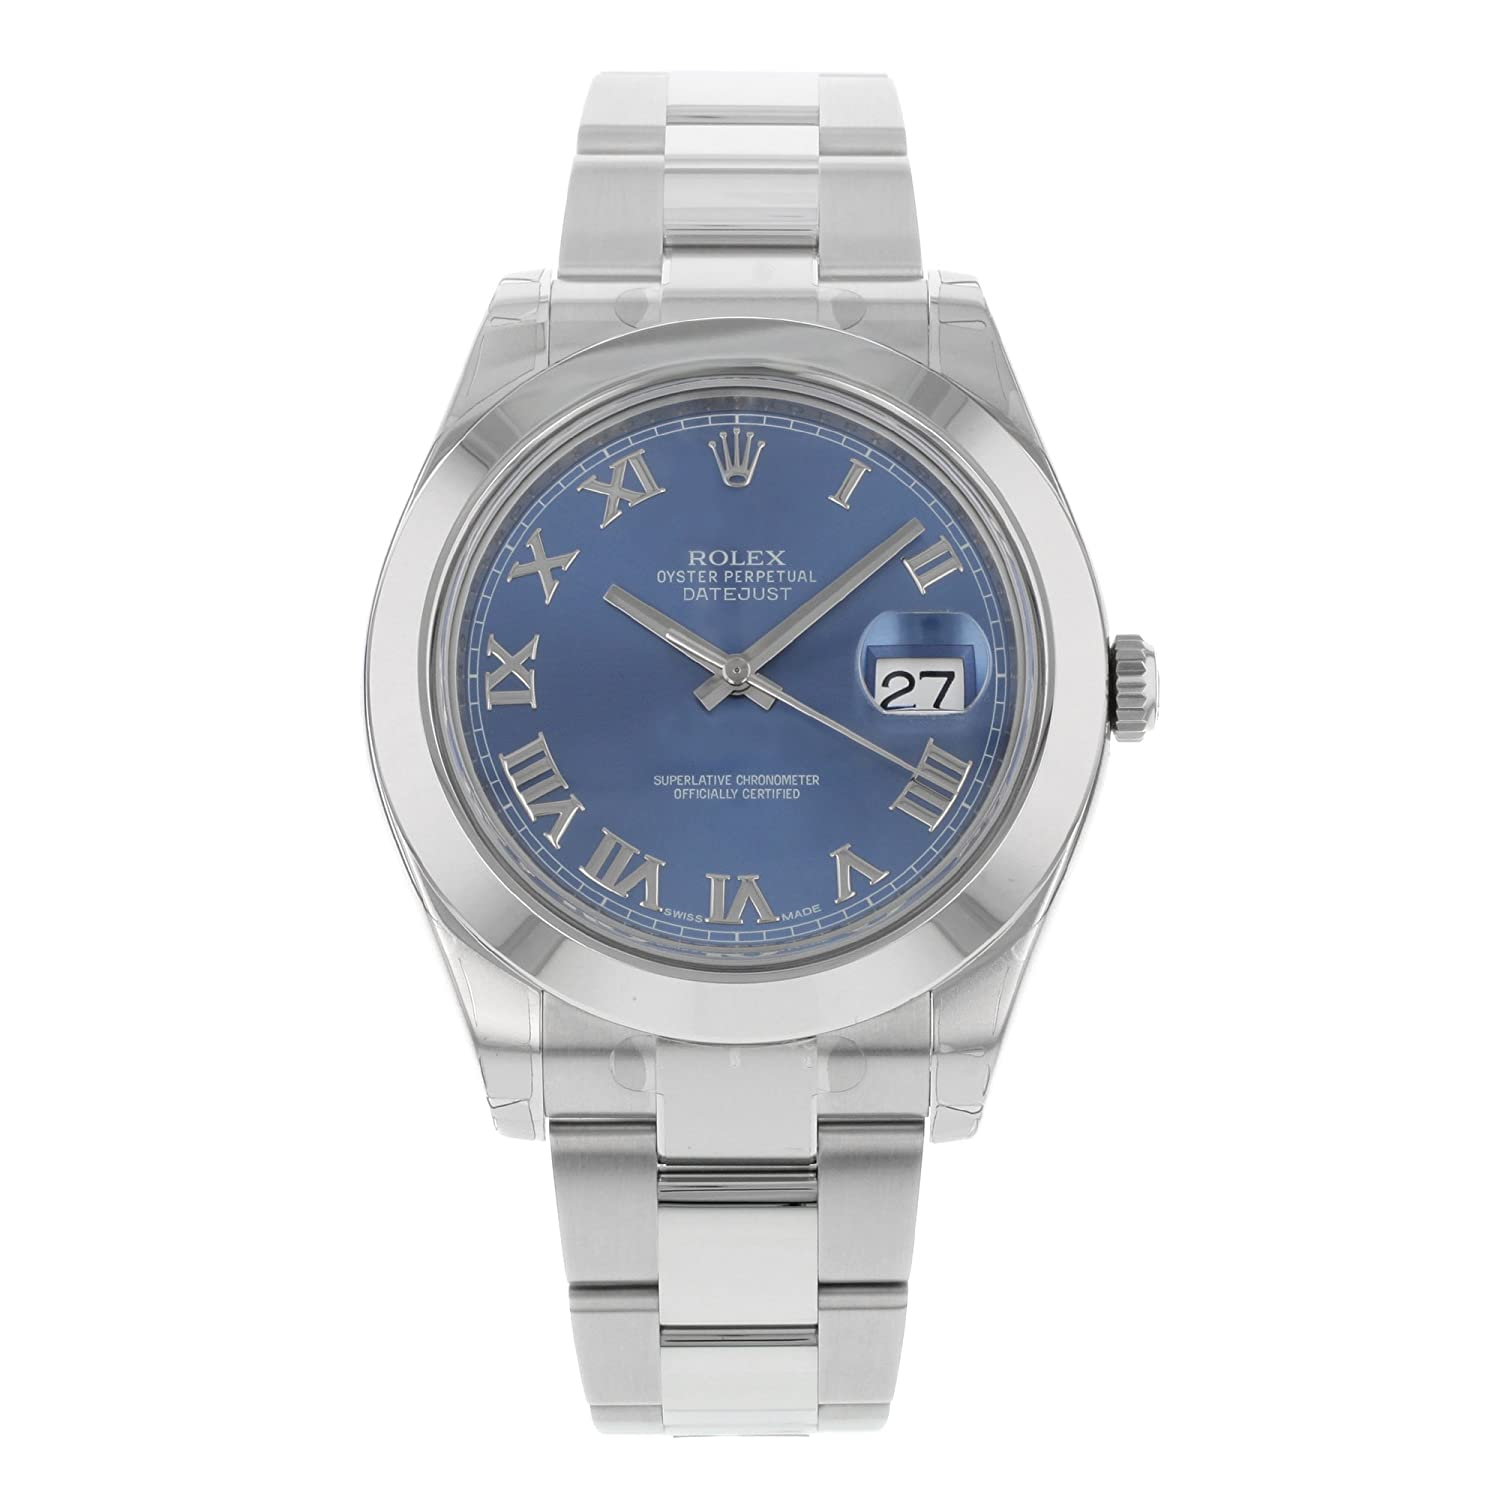 Rolex Datejust Oyster Perpetual Price